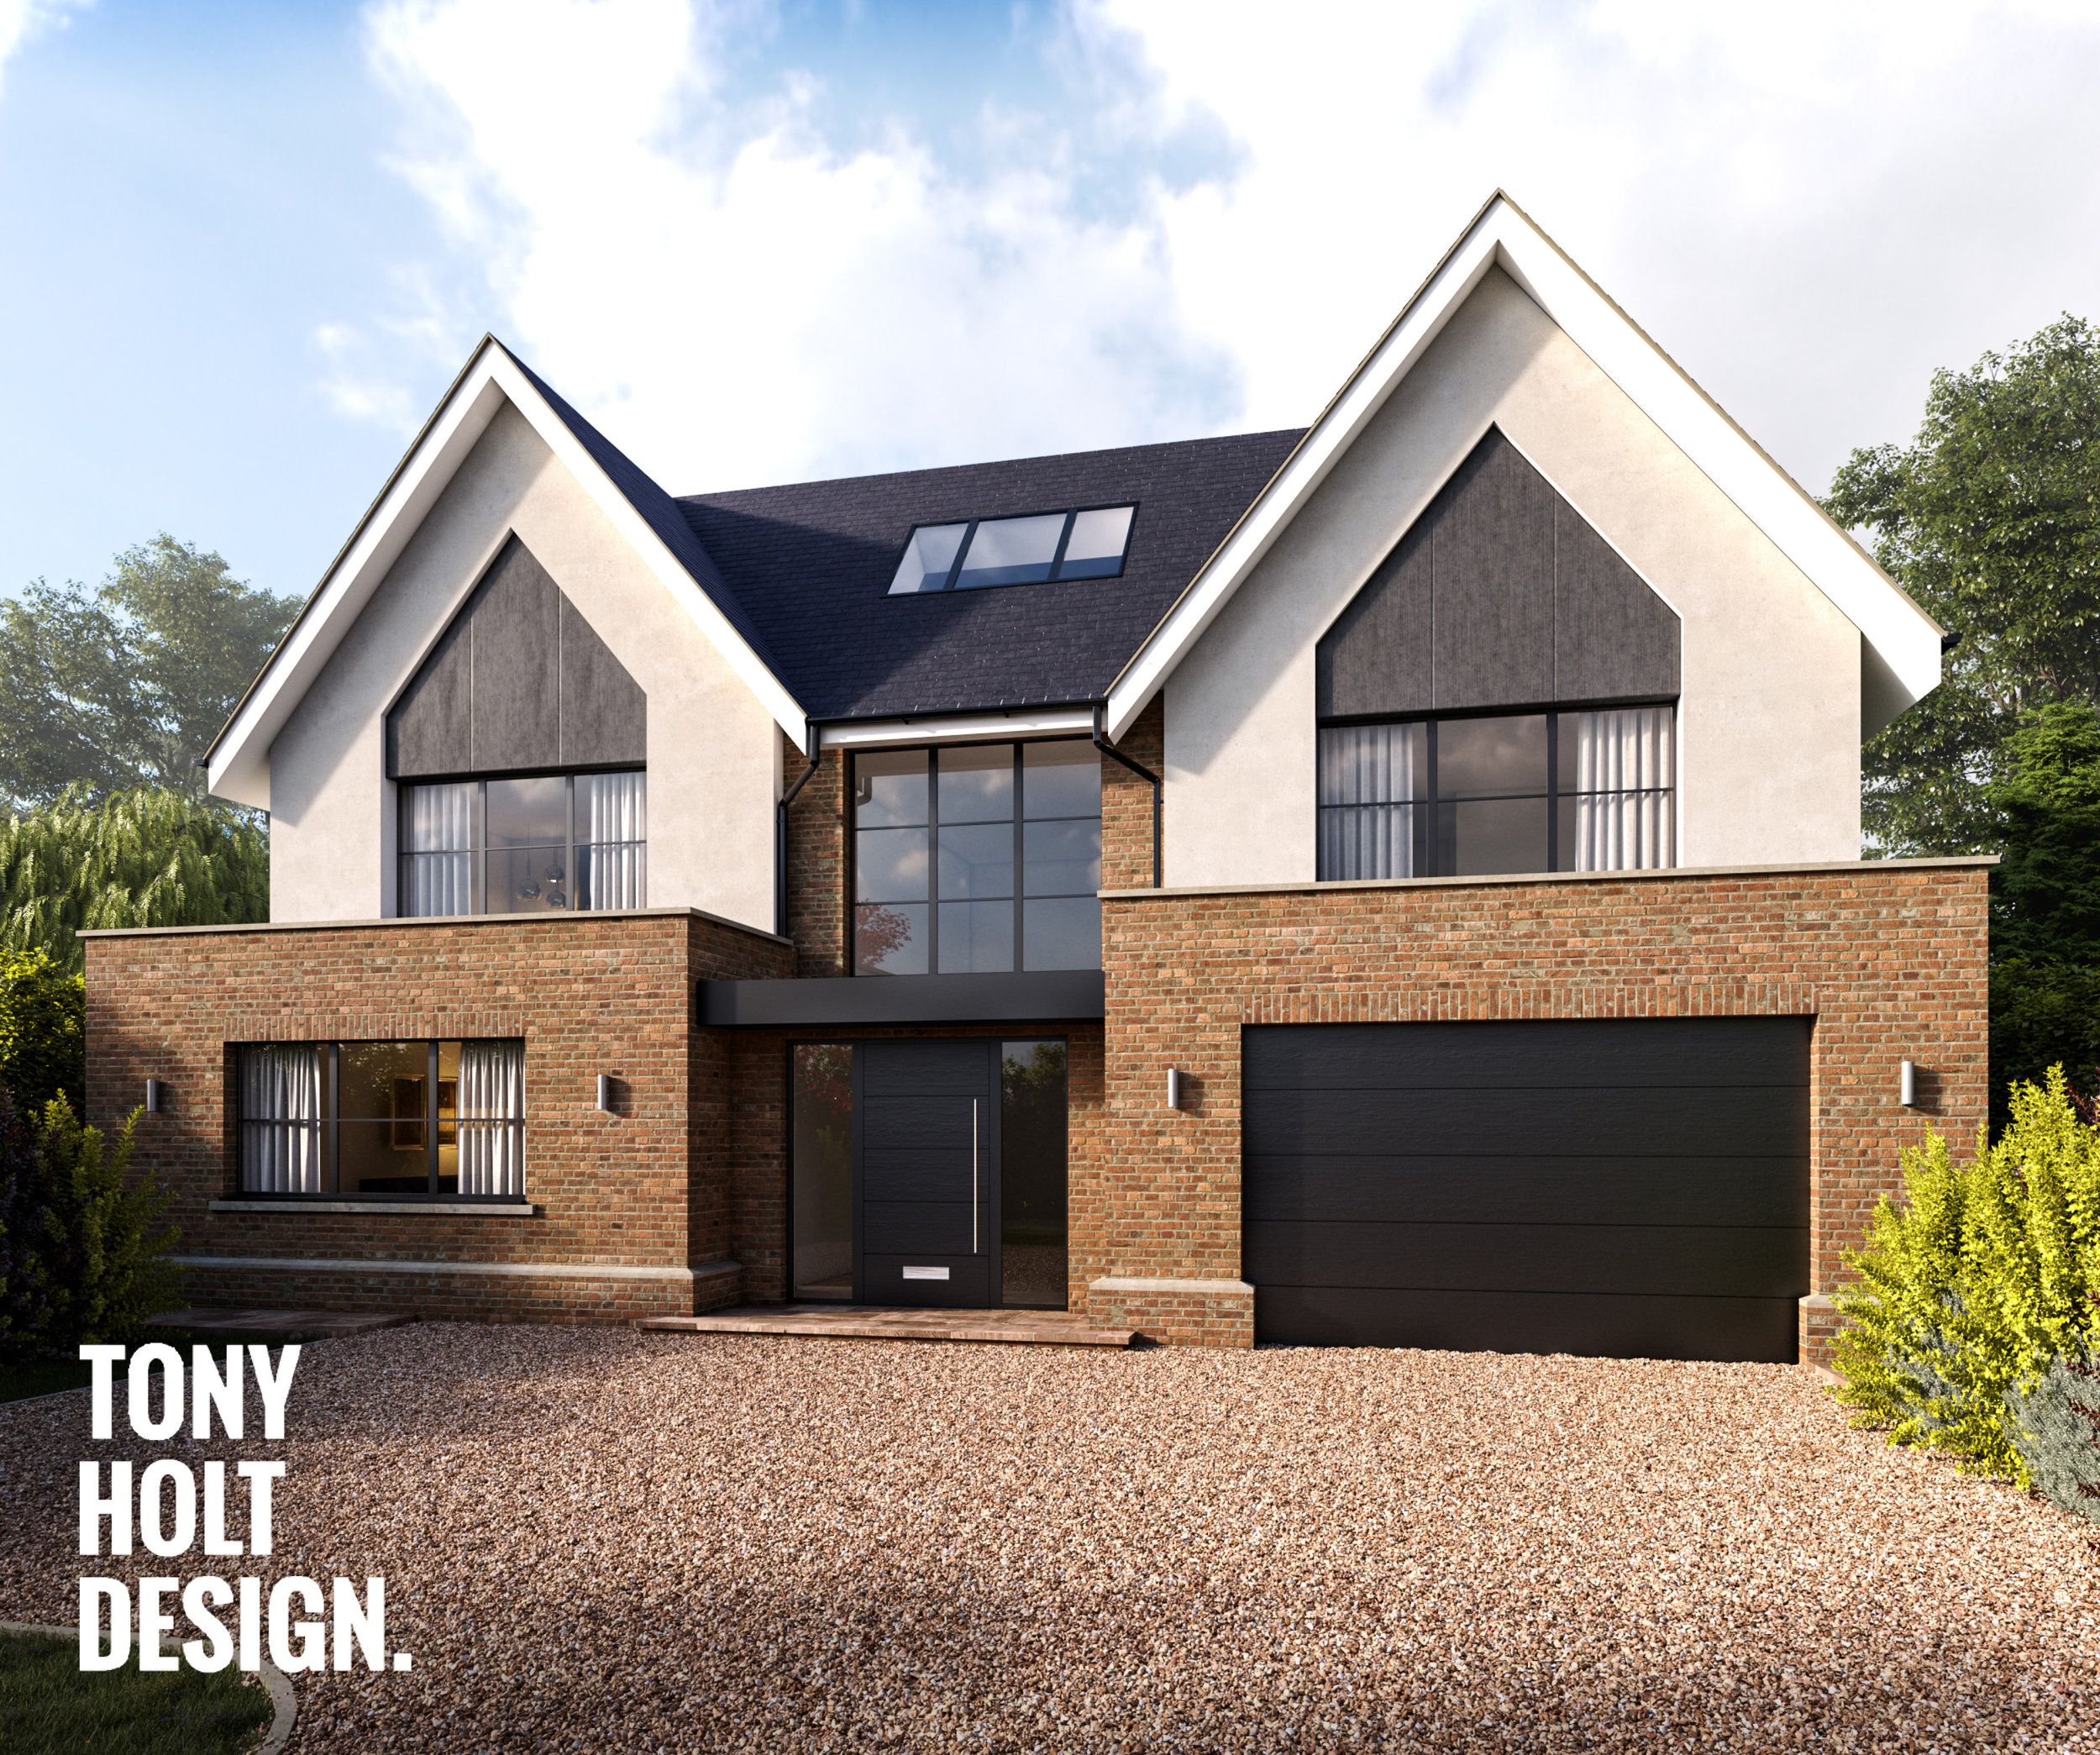 Tony Holt Design_Self Build_New Build_The Clump 01_CGI.jpg